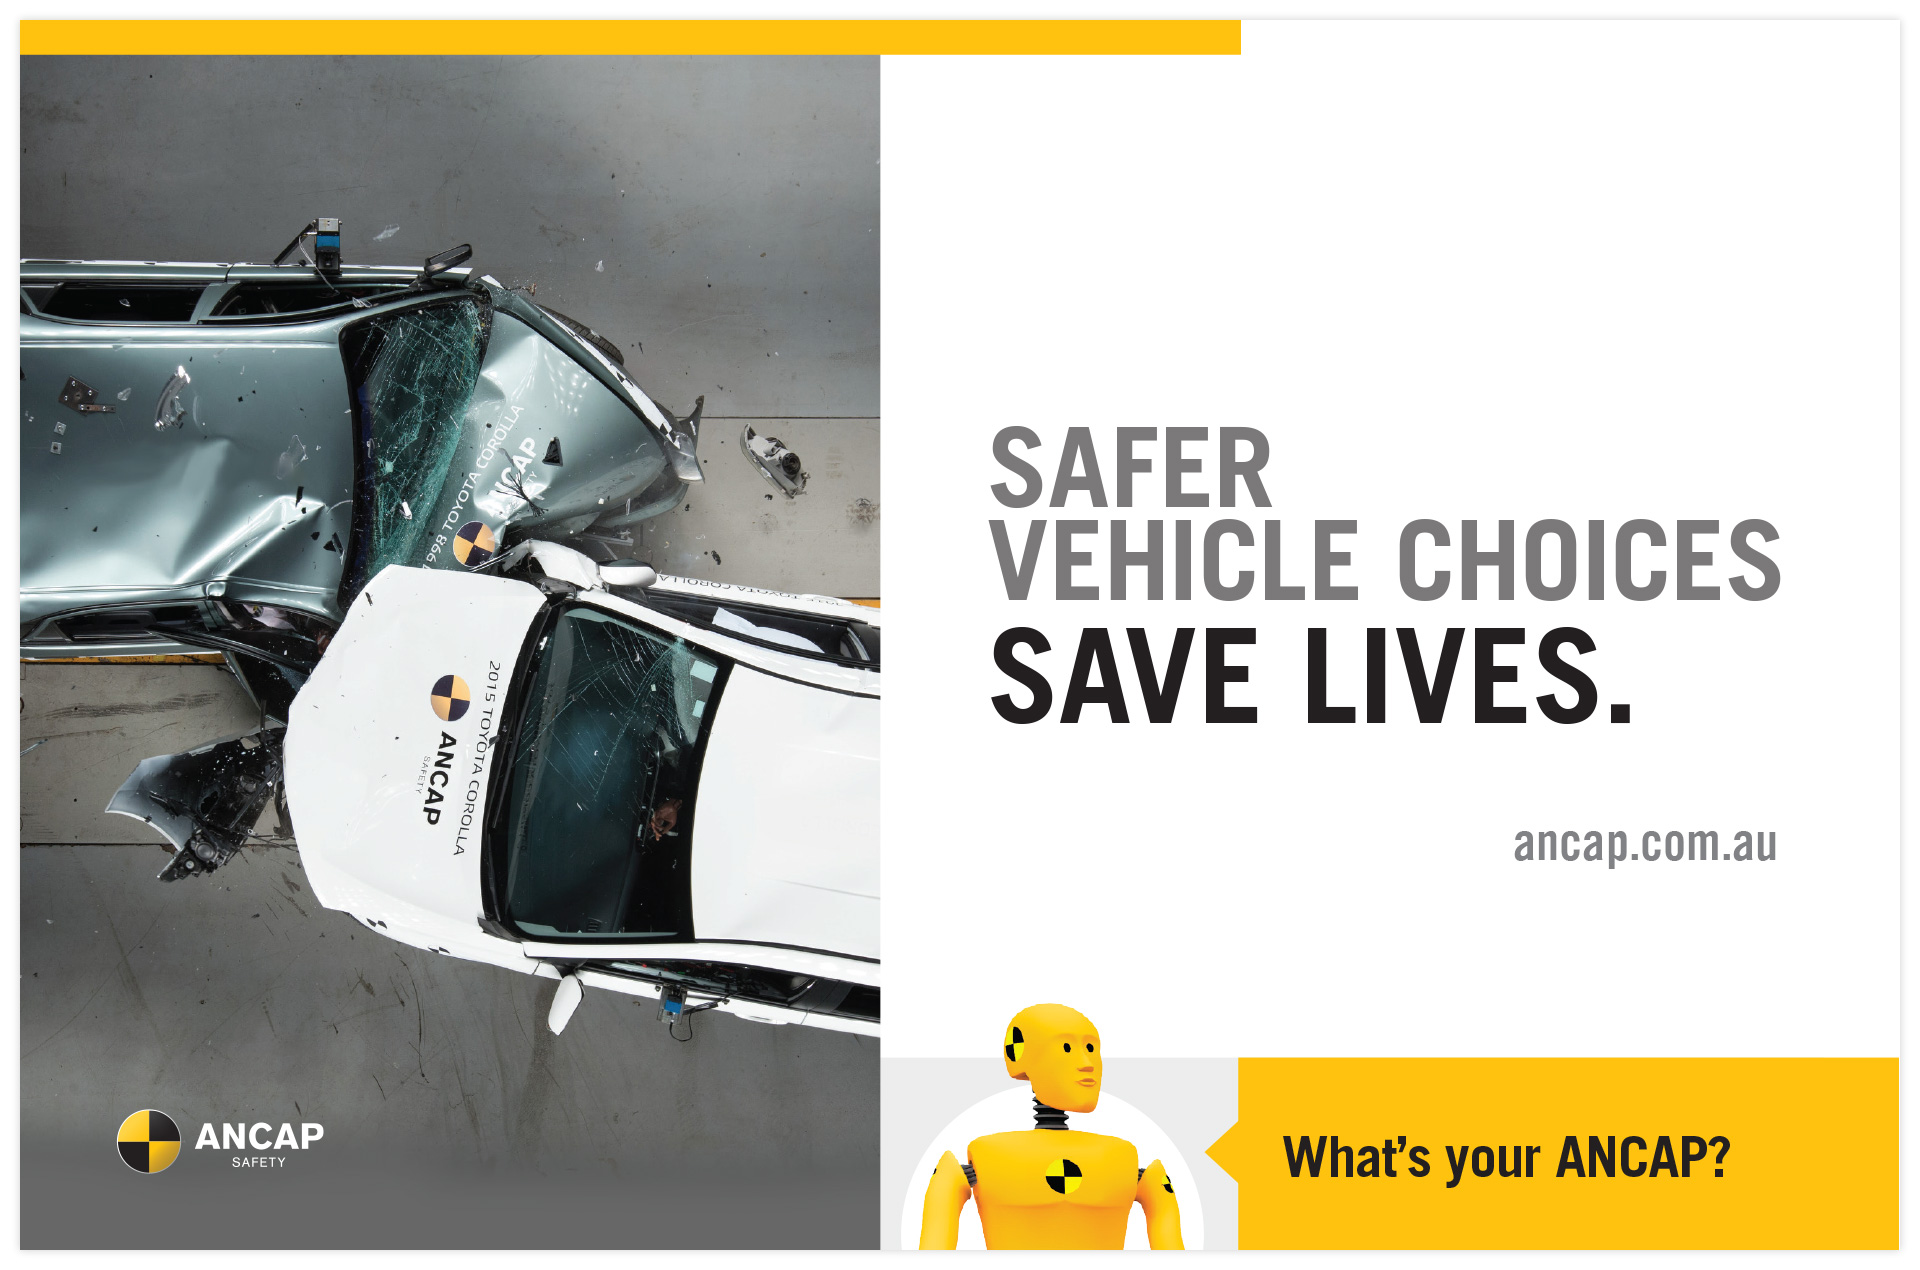 ANCAP rear window taxi advertisement in a variety of formats